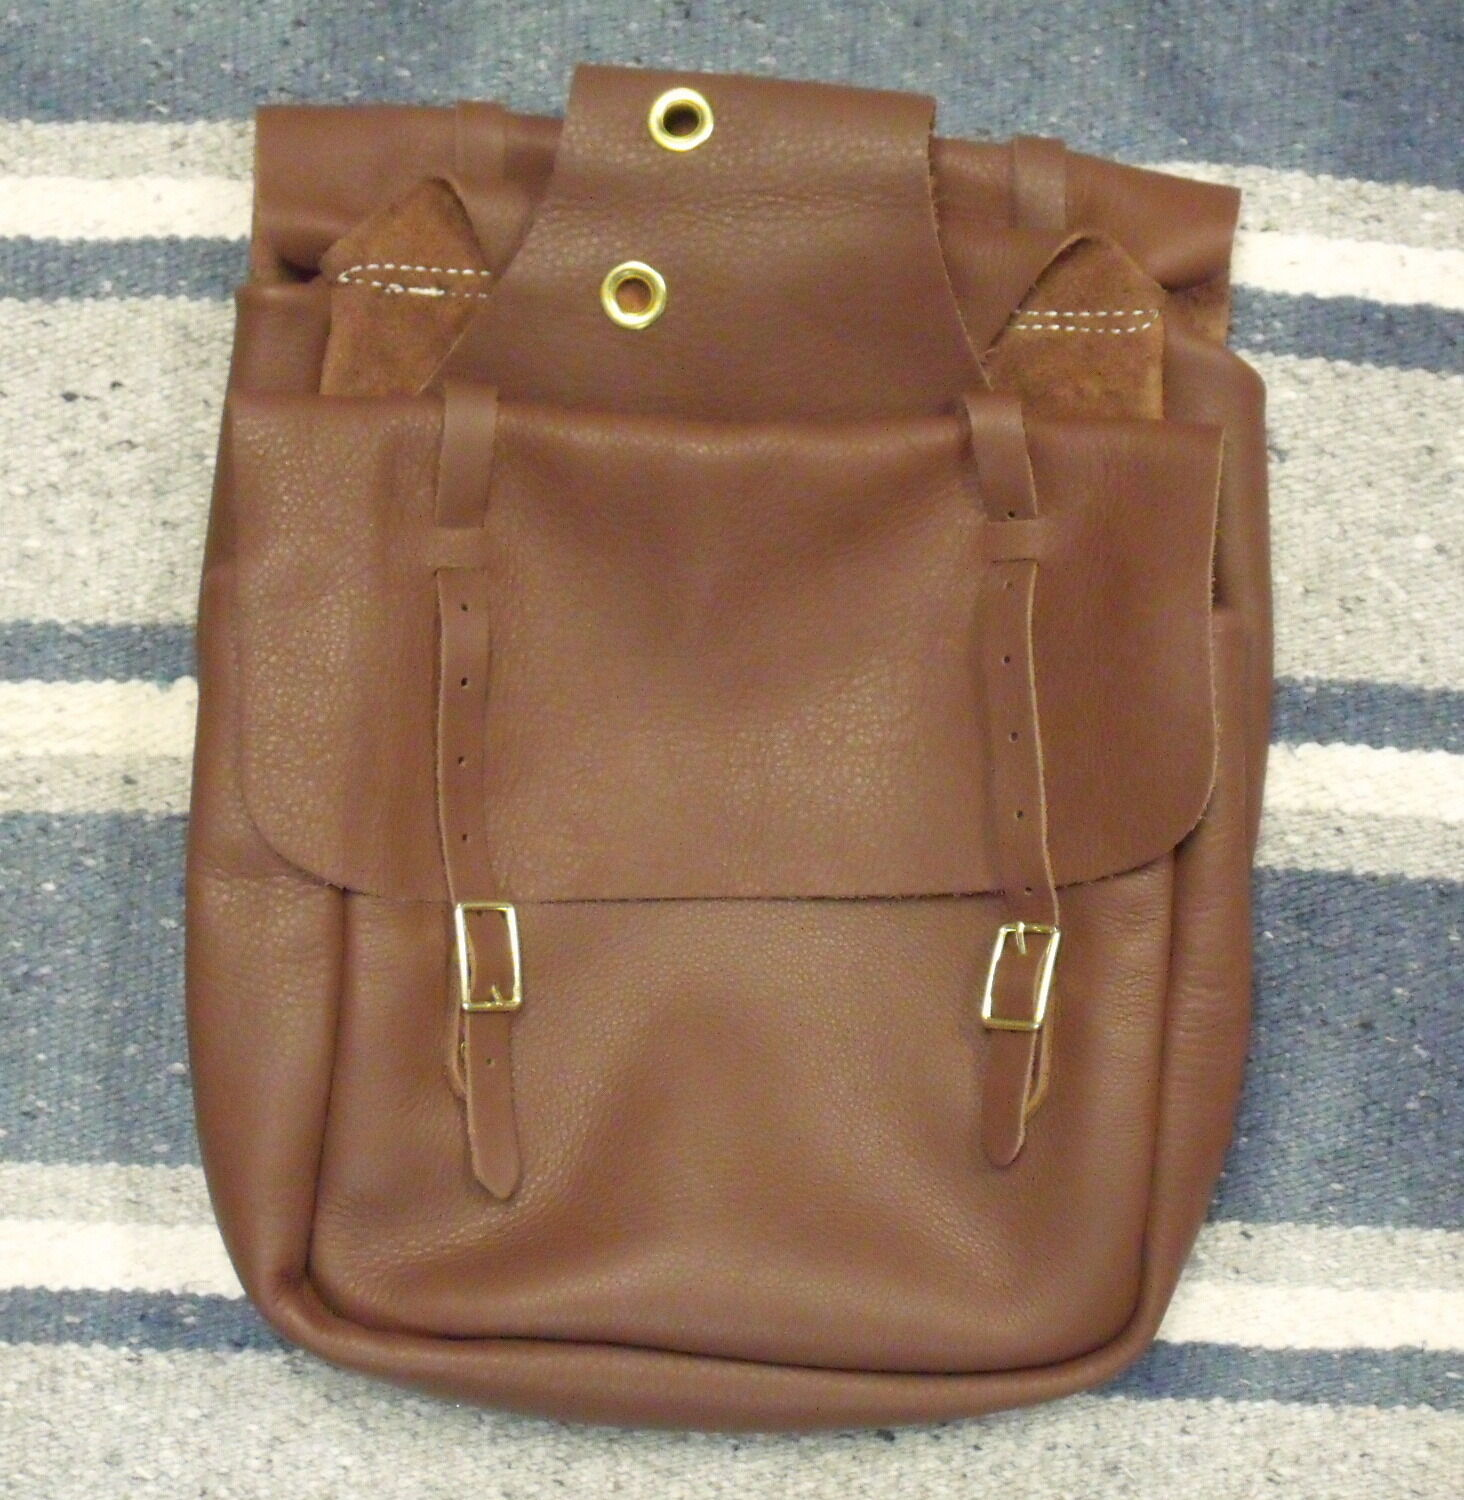 WEAVER LEATHER Marronee CHAP LEATHER SADDLE BAGS